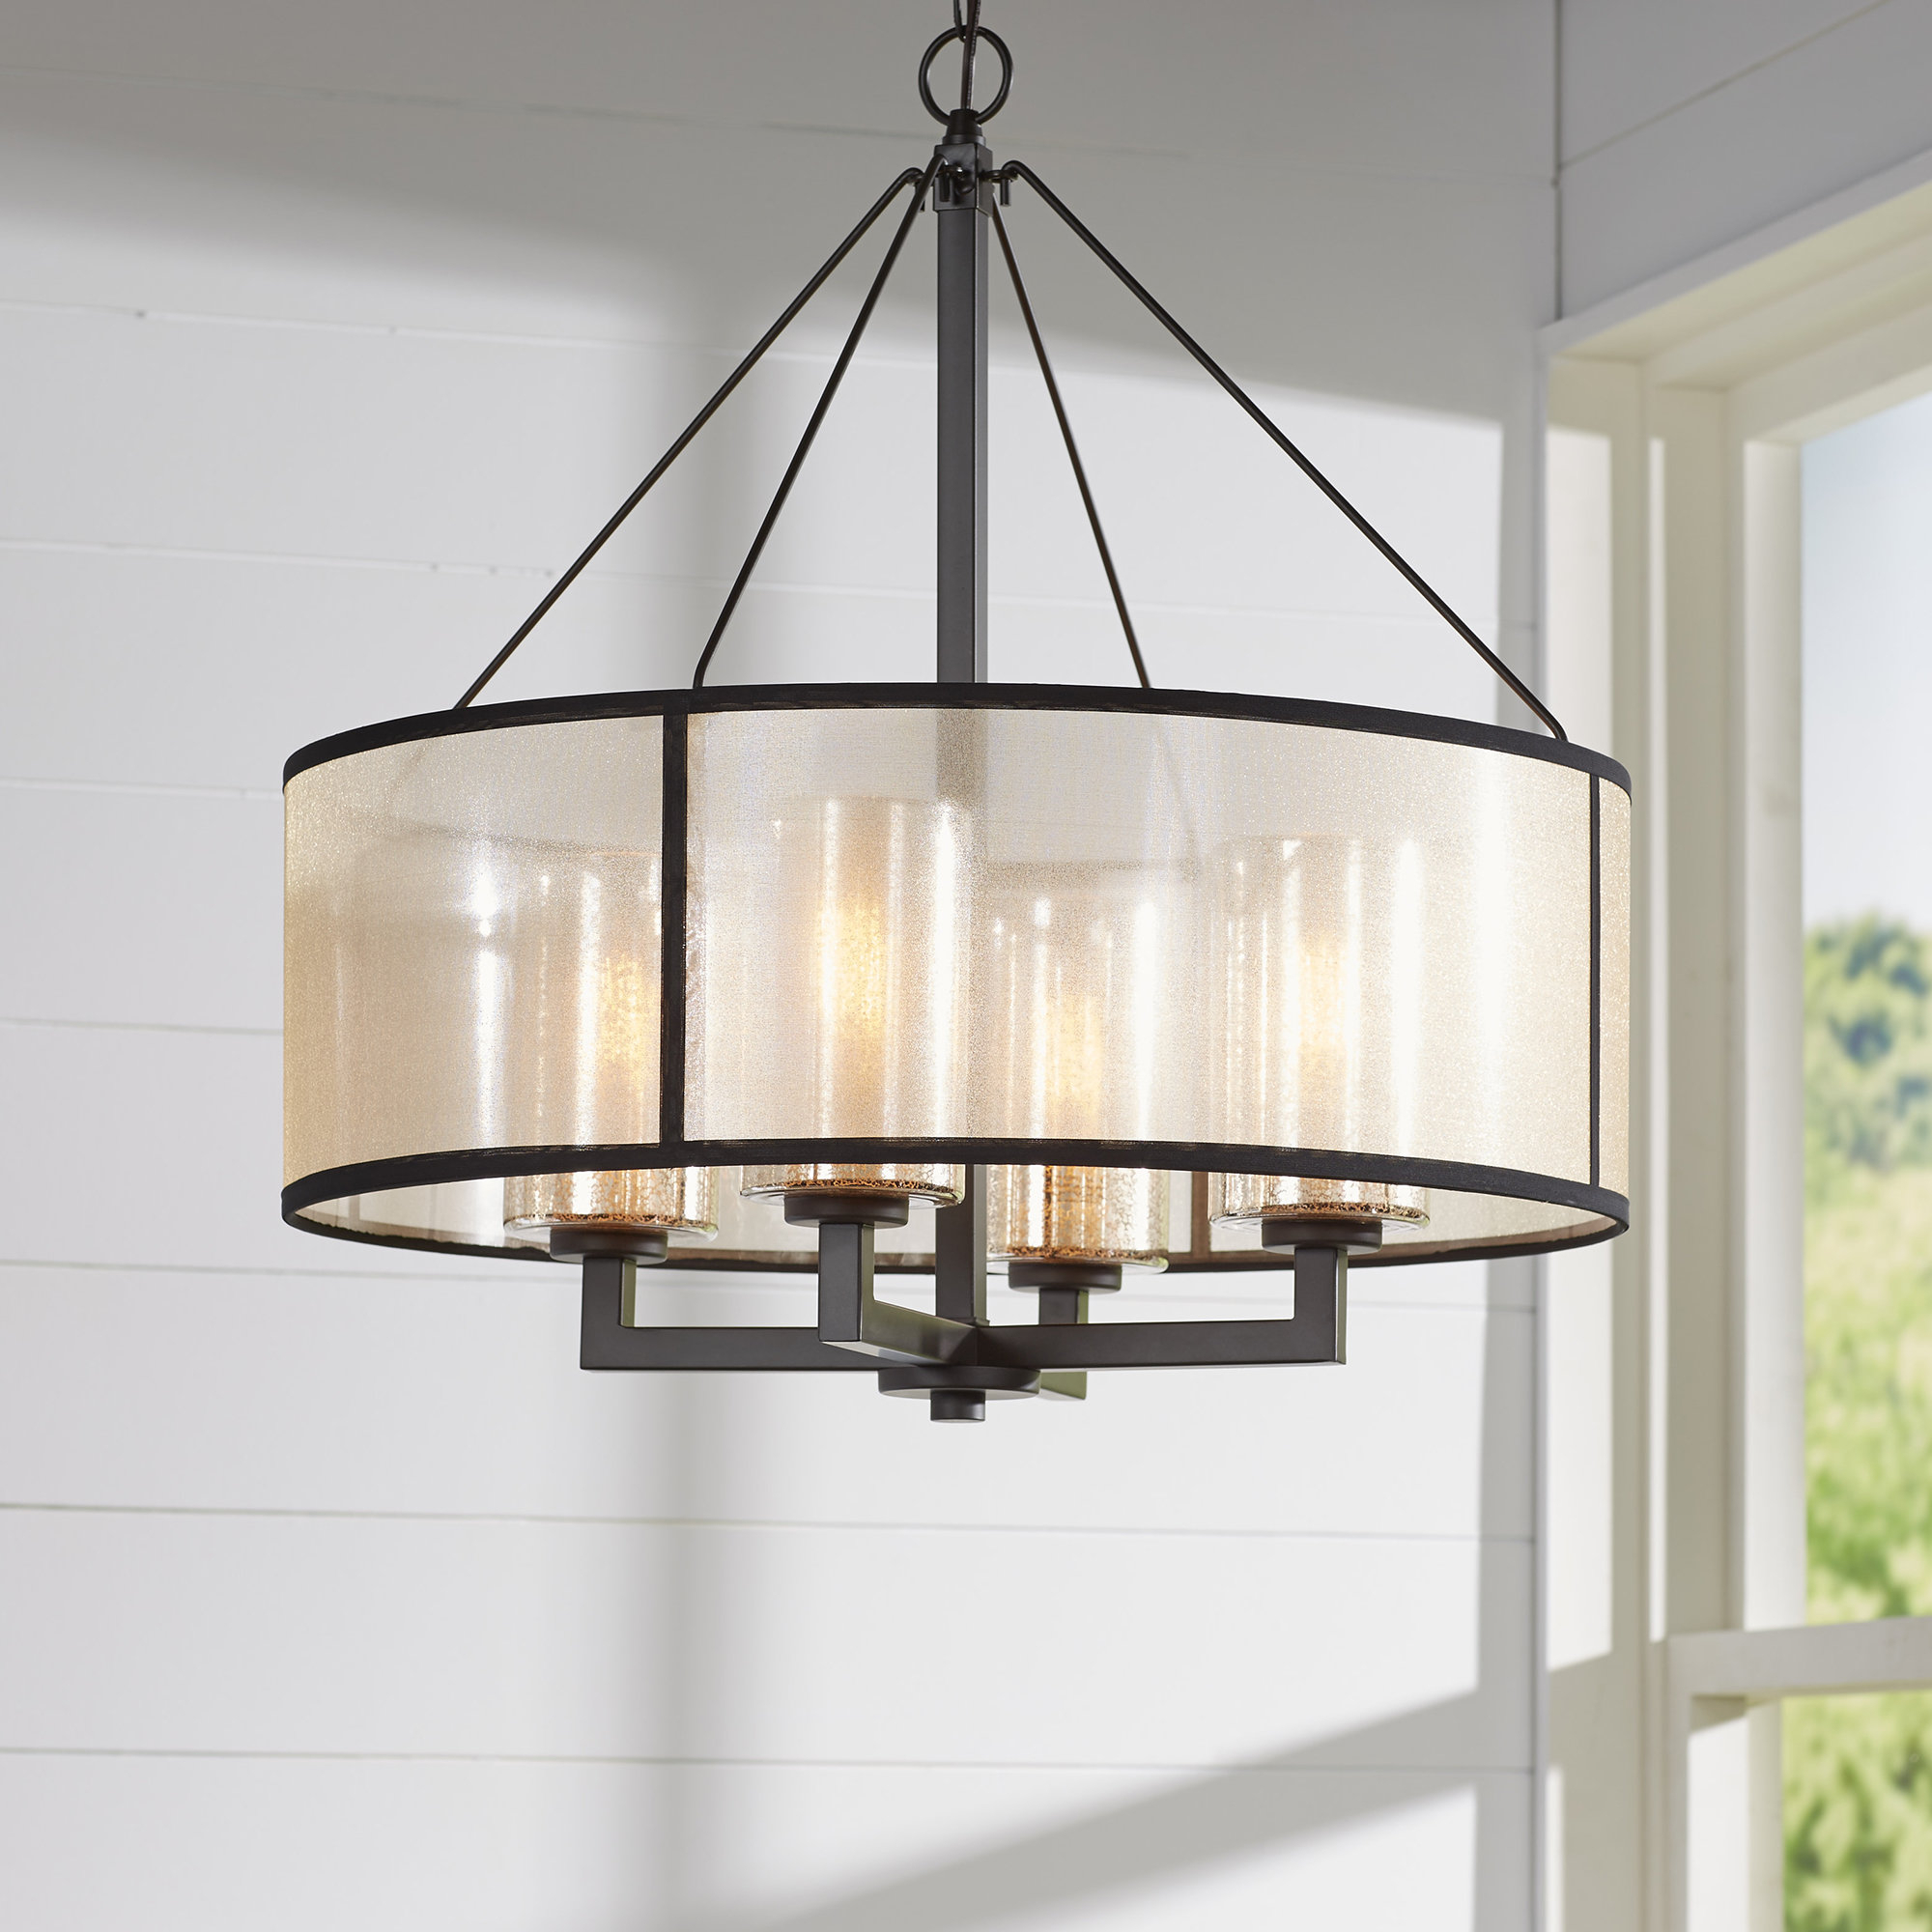 Dailey 4-Light Drum Chandeliers for Popular Dailey 4-Light Drum Chandelier